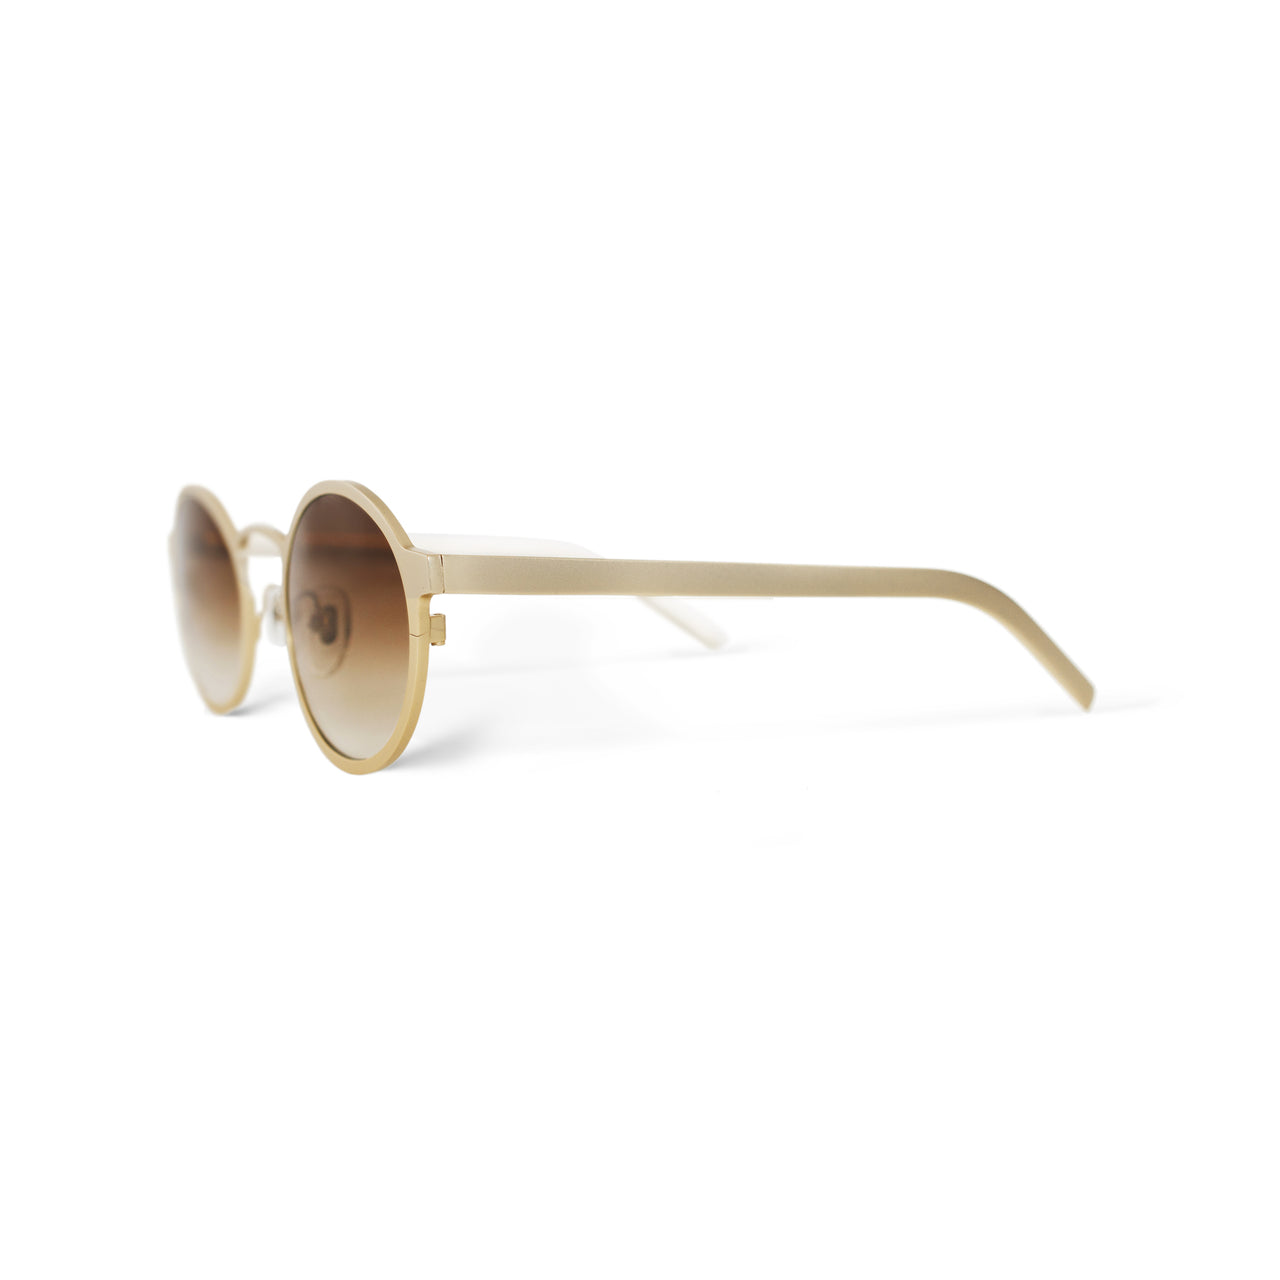 Metal. Brushed Gold. Amber Lens. - BLYSZAK eyewear eyewear - eyewear, optical, sunglasses